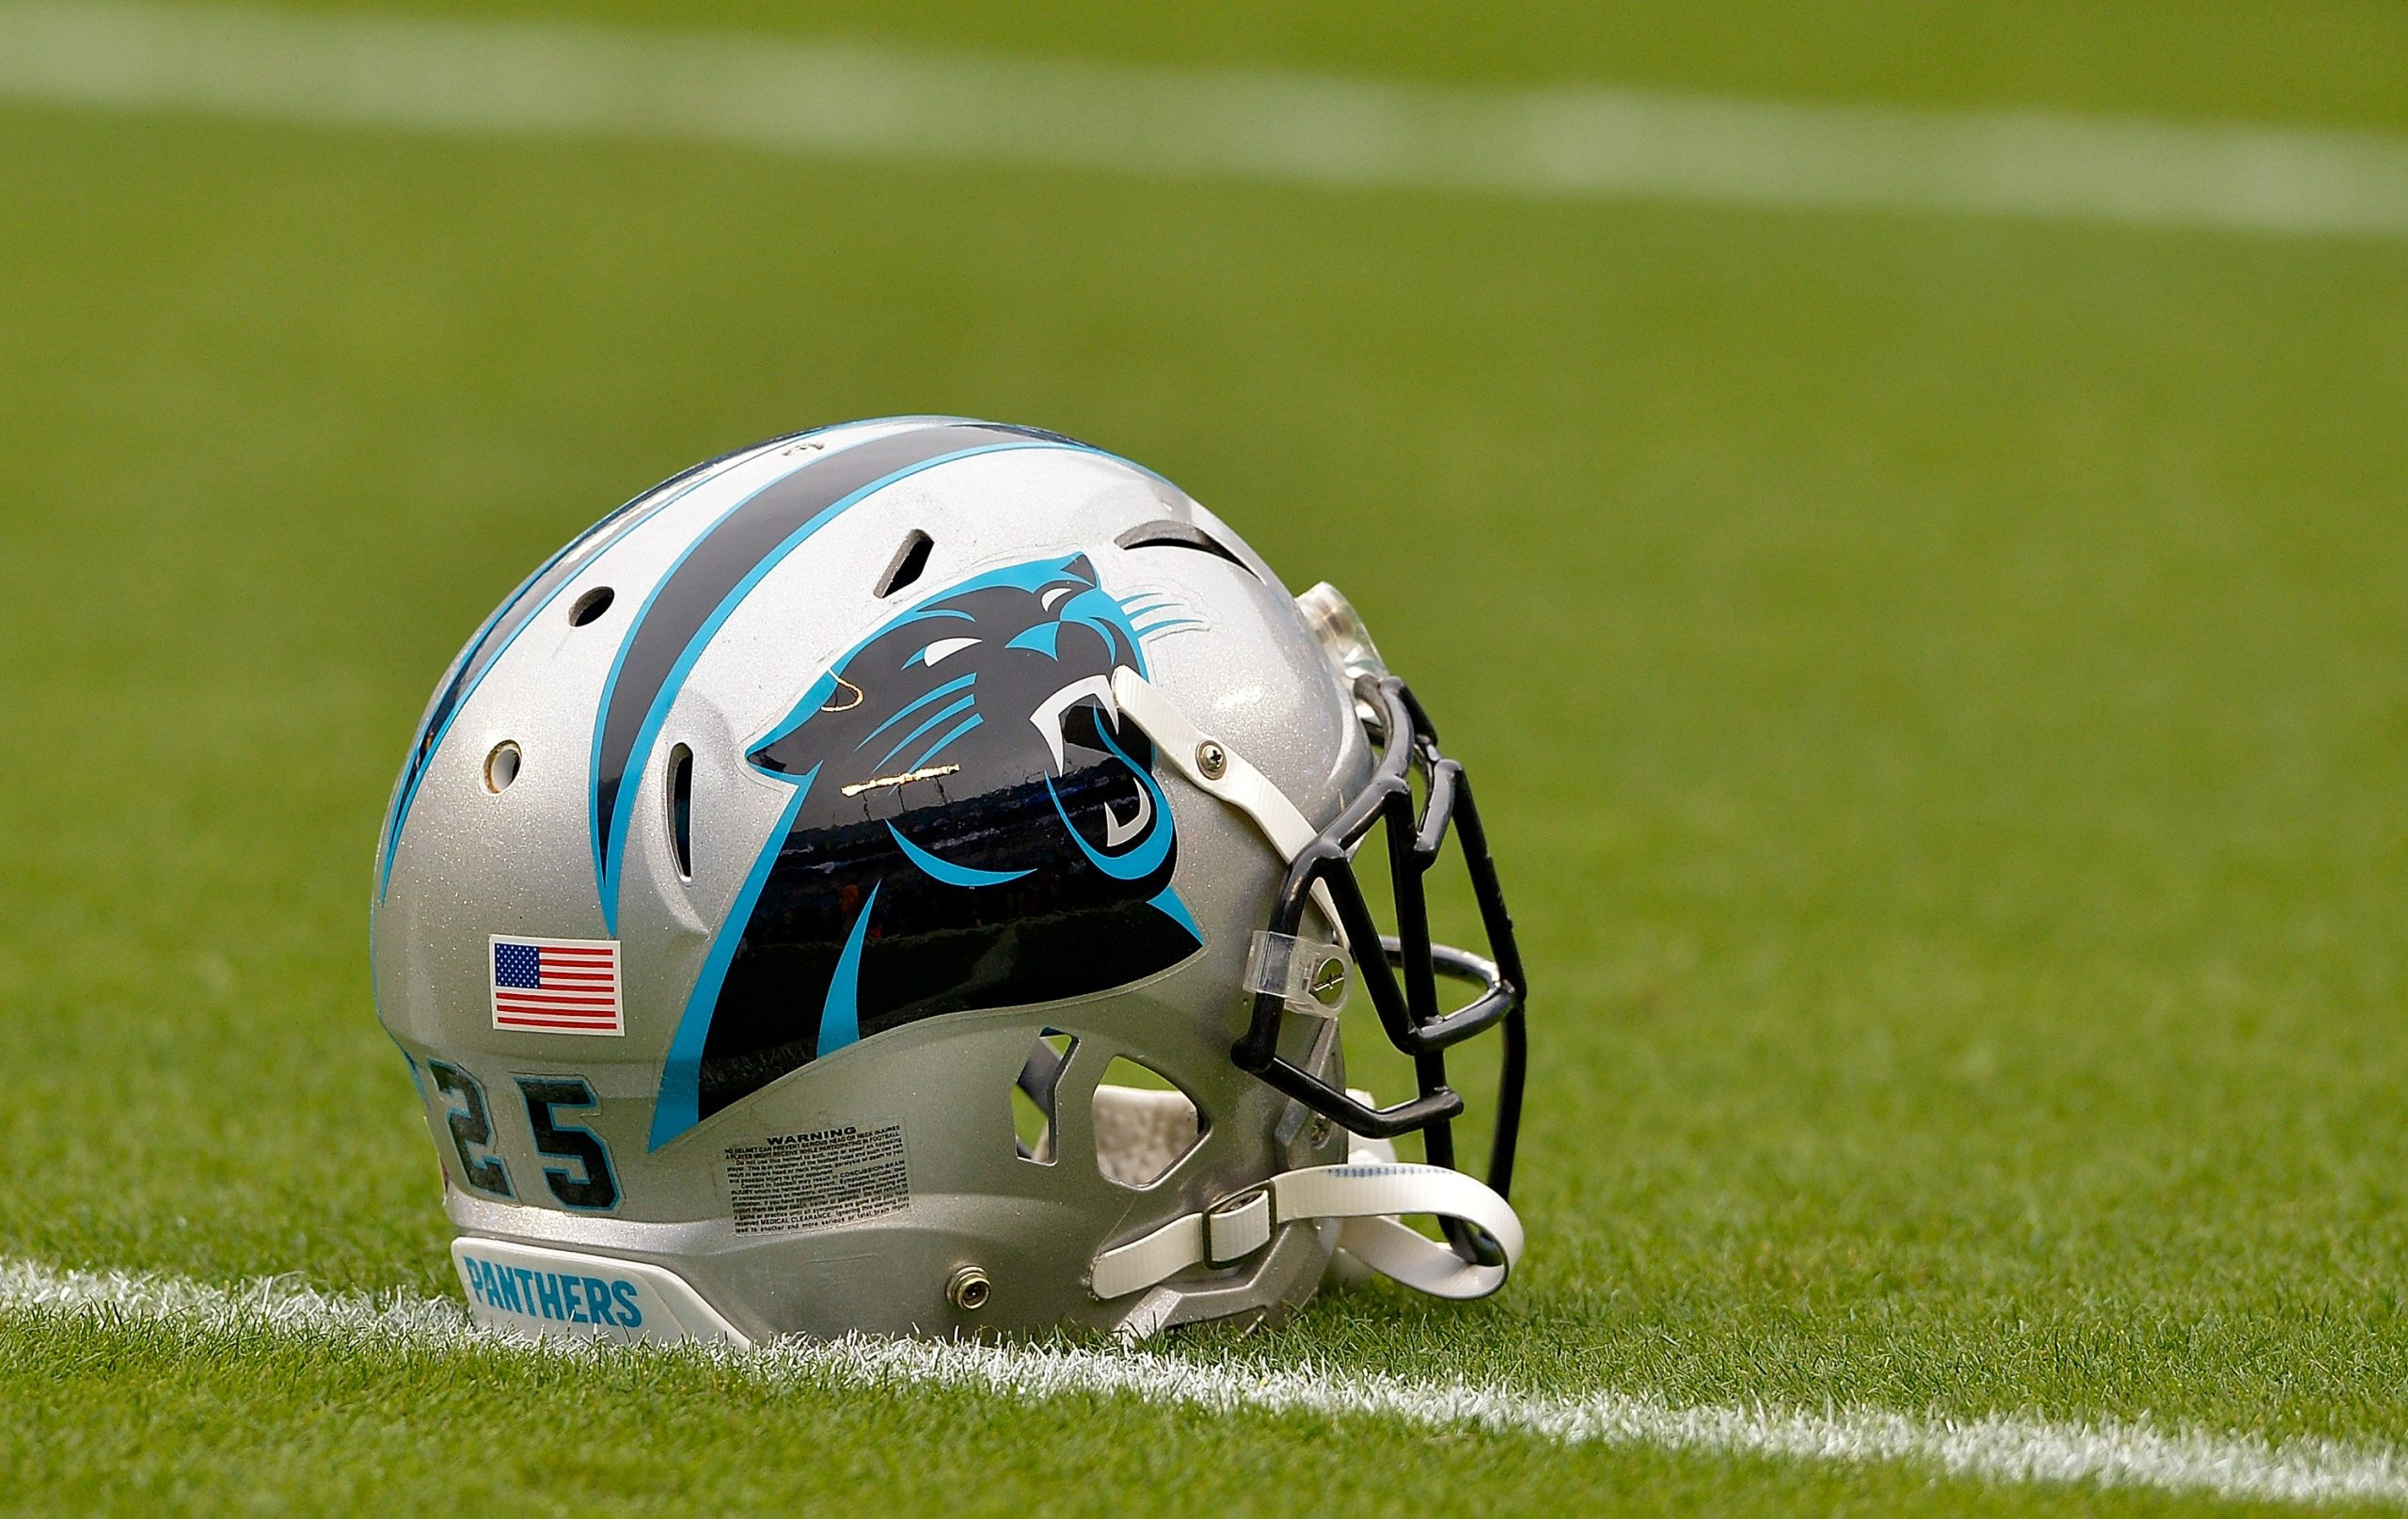 Carolina Panthers To Reduce Stadium Capacity For Home Games Psl Owners Can Skip Or Stay In For 2020 Season Myfox8 Com